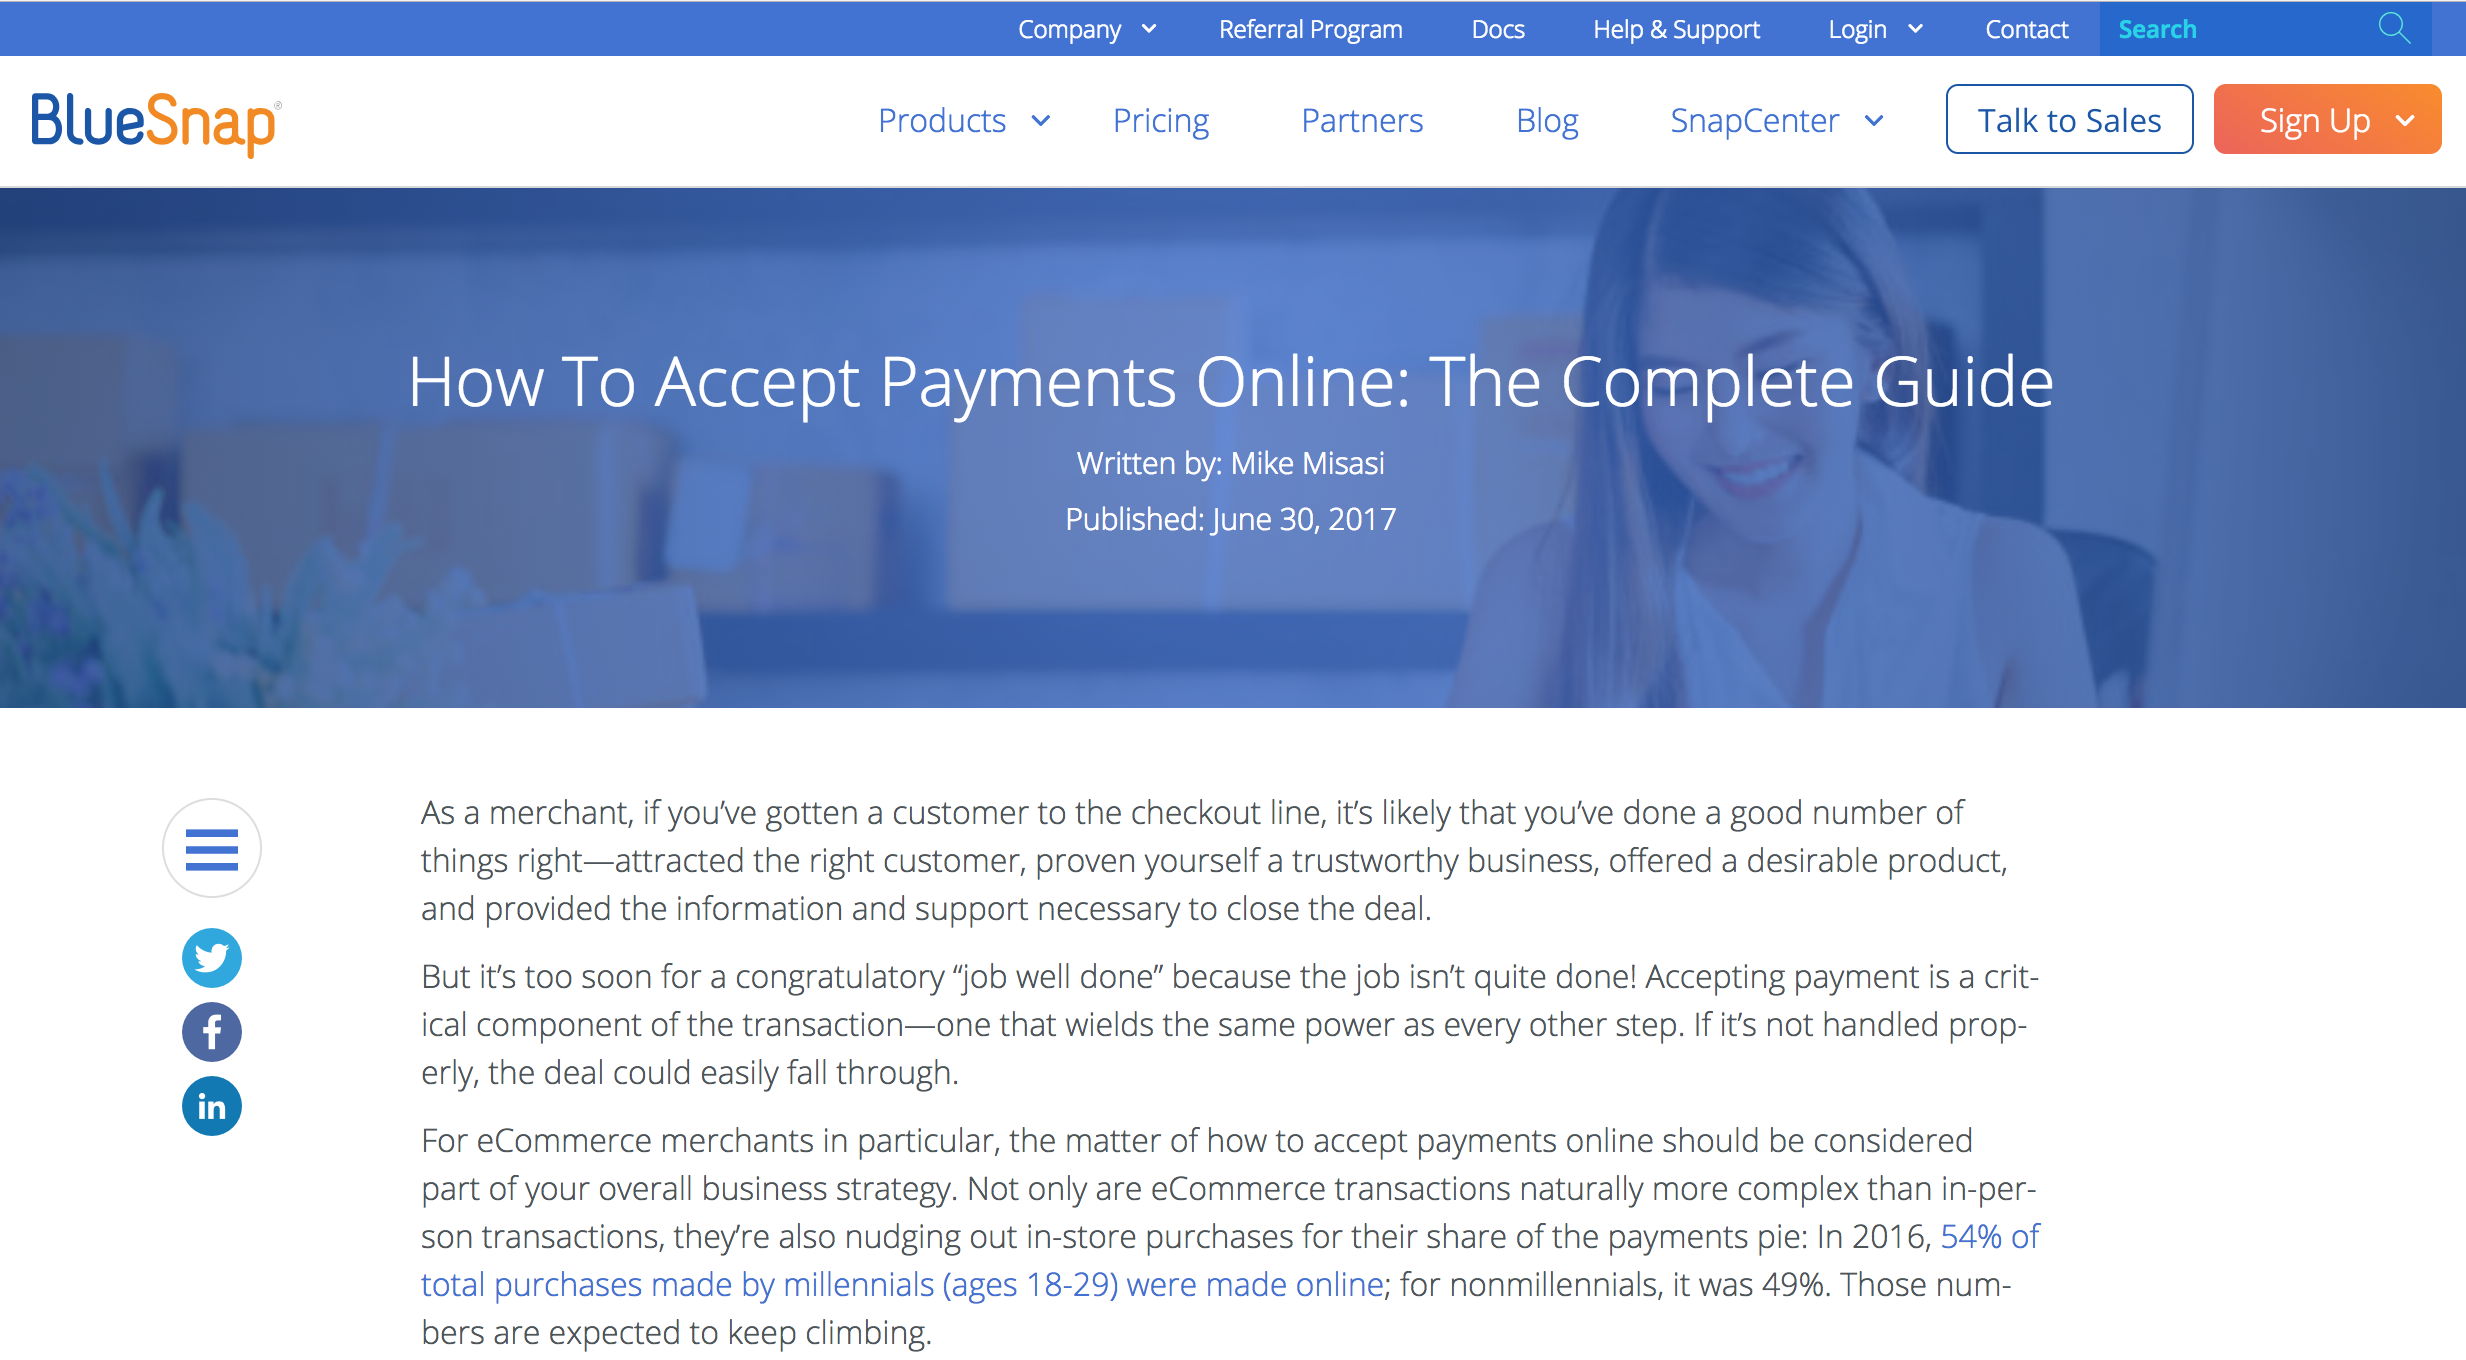 How To Accept Payments Online: The Complete Guide